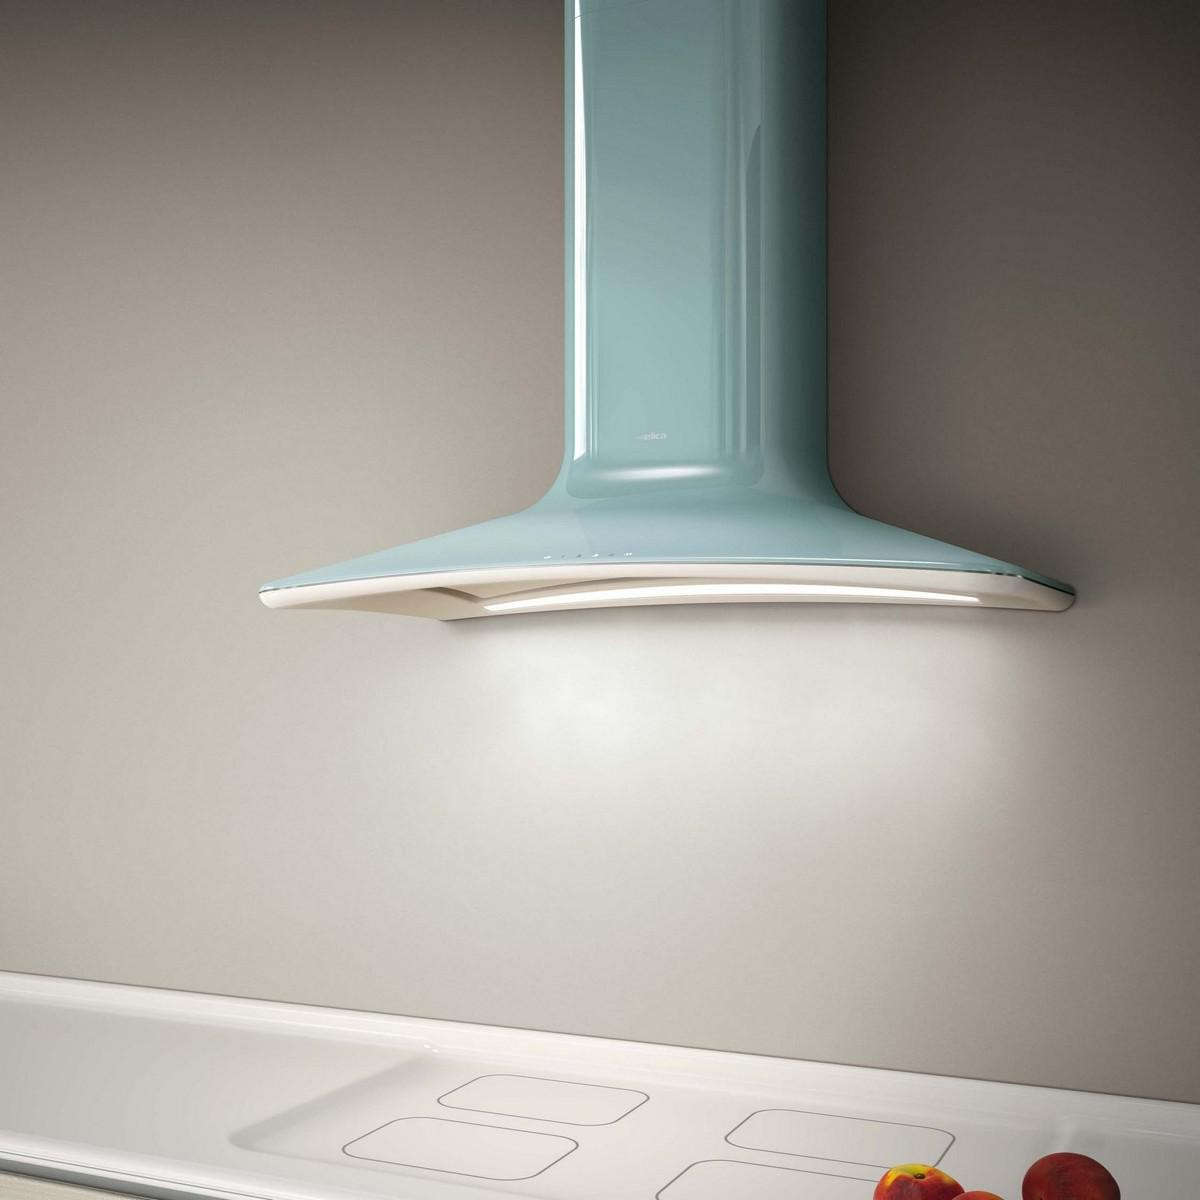 Elica Sweet Sweet Wall Kitchen Hood Elica Design Is This